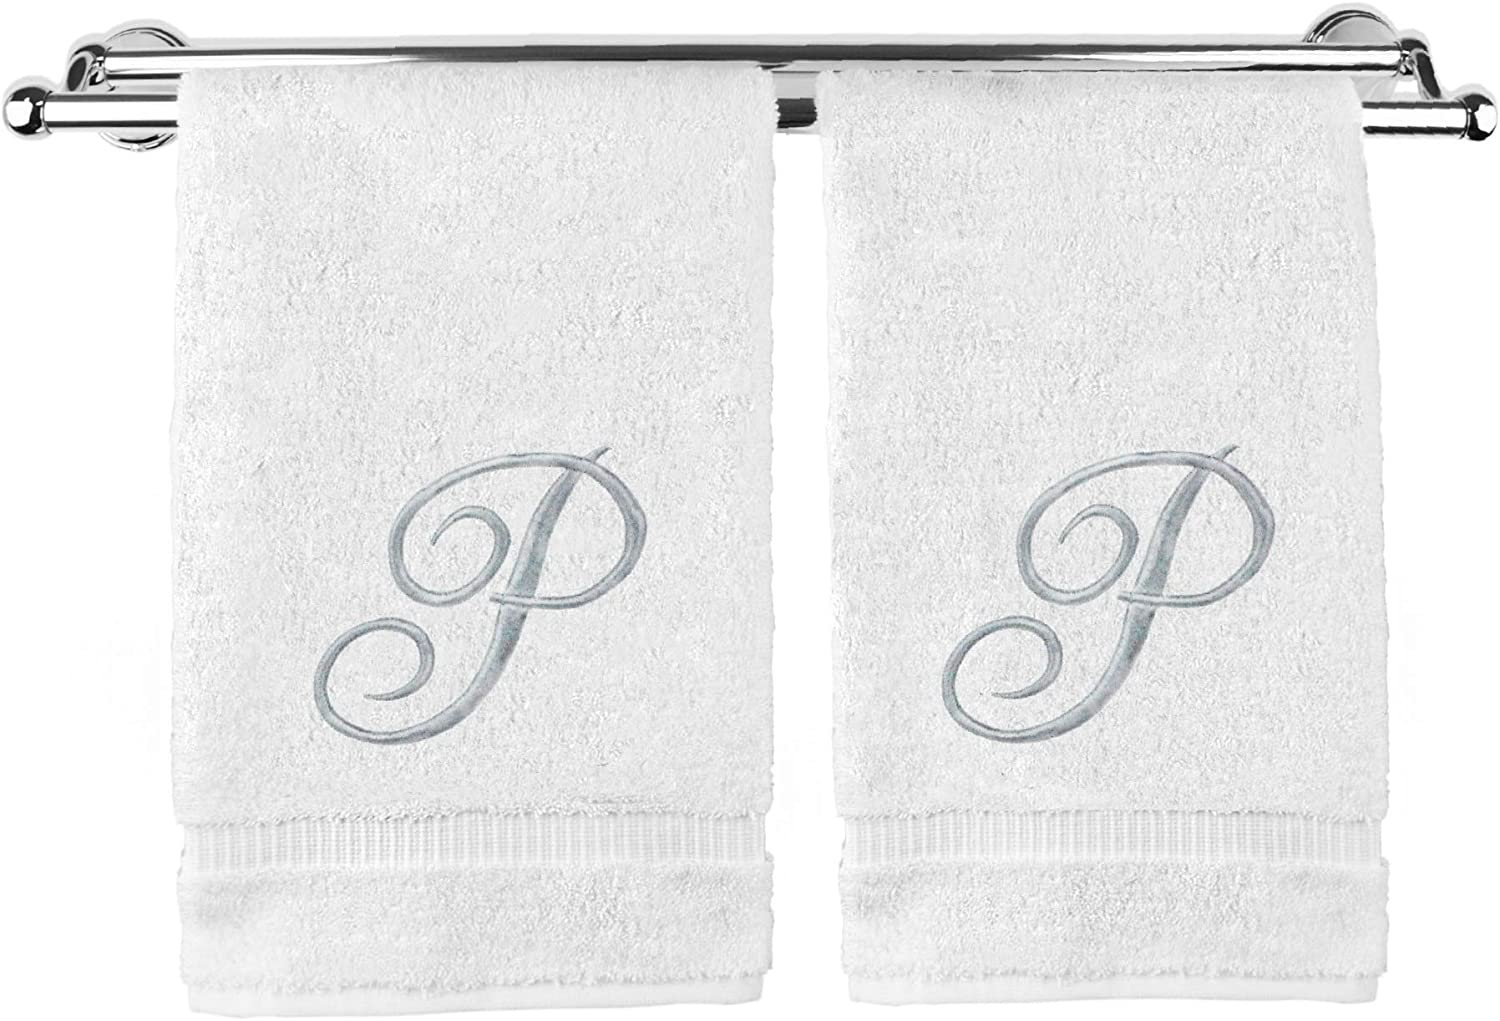 Monogrammed Hand Towel, Personalized Gift, 16 x 30 Inches - Set of 2 - Silver Embroidered Towel - Extra Absorbent 100% Turkish Cotton- Soft Terry Finish - for Bathroom, Kitchen and Spa- Script M Gray: Home & Kitchen